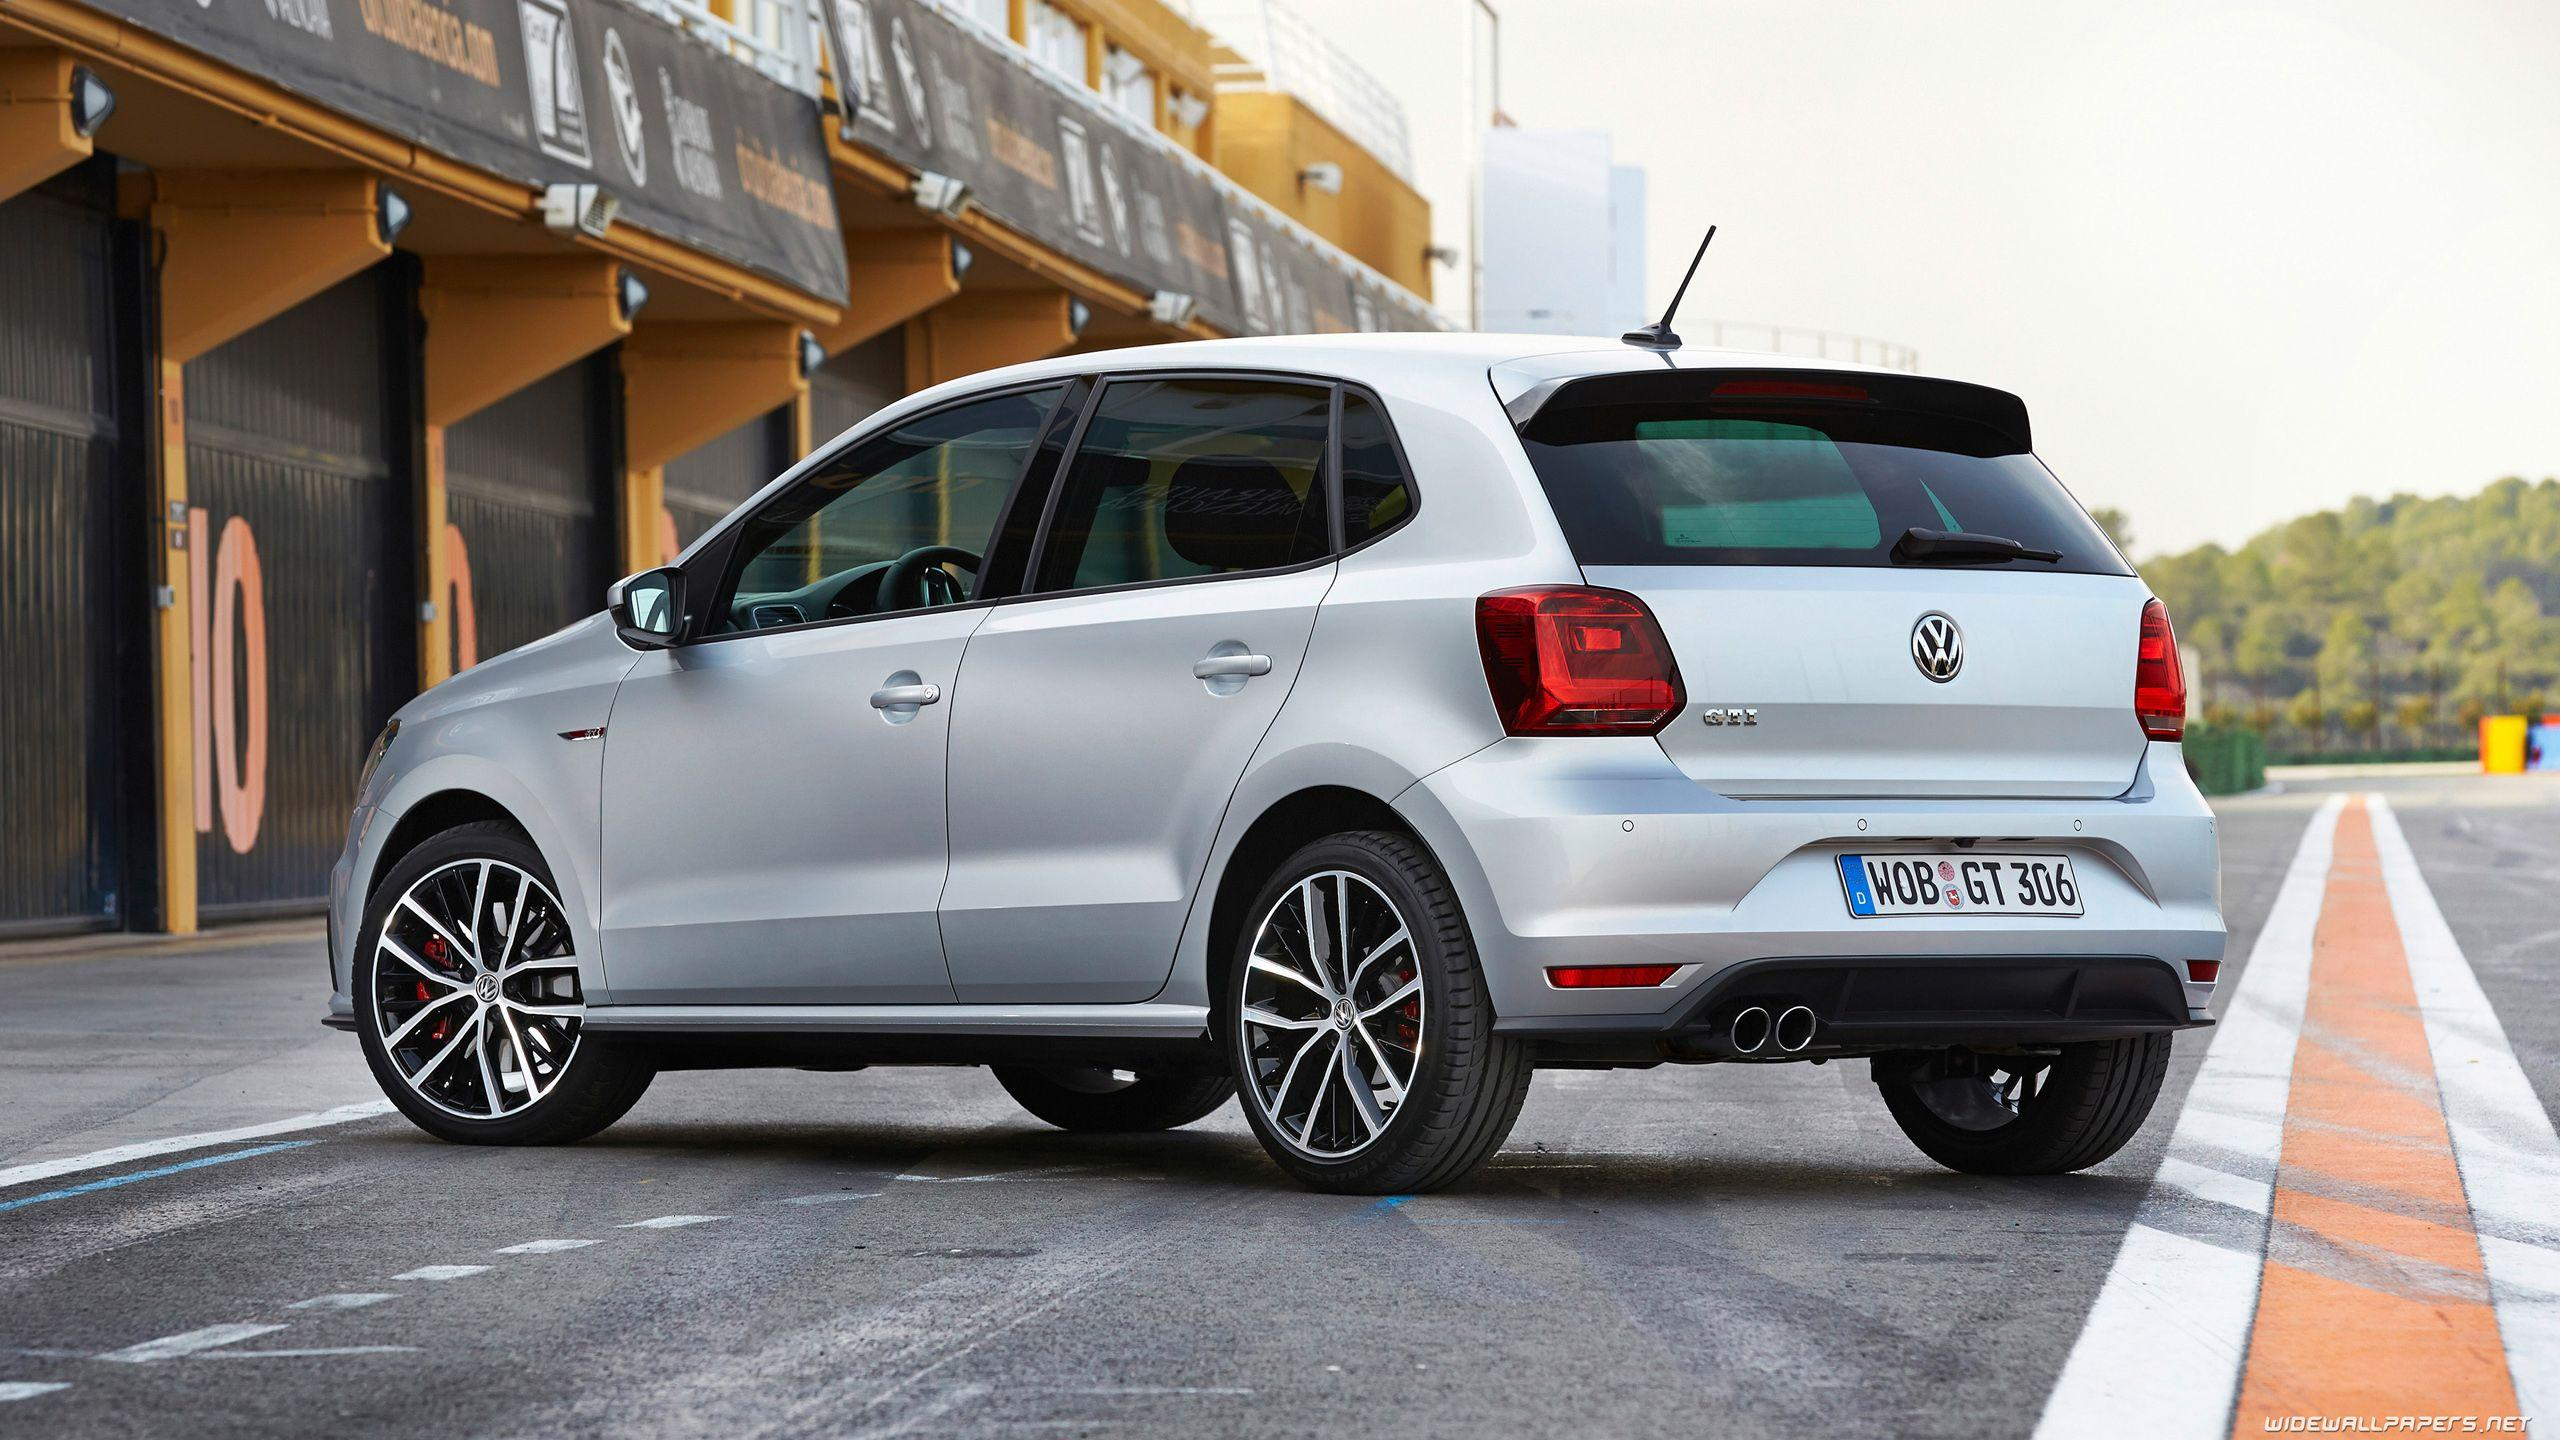 Polo Gti Wallpapers Wallpaper Cave